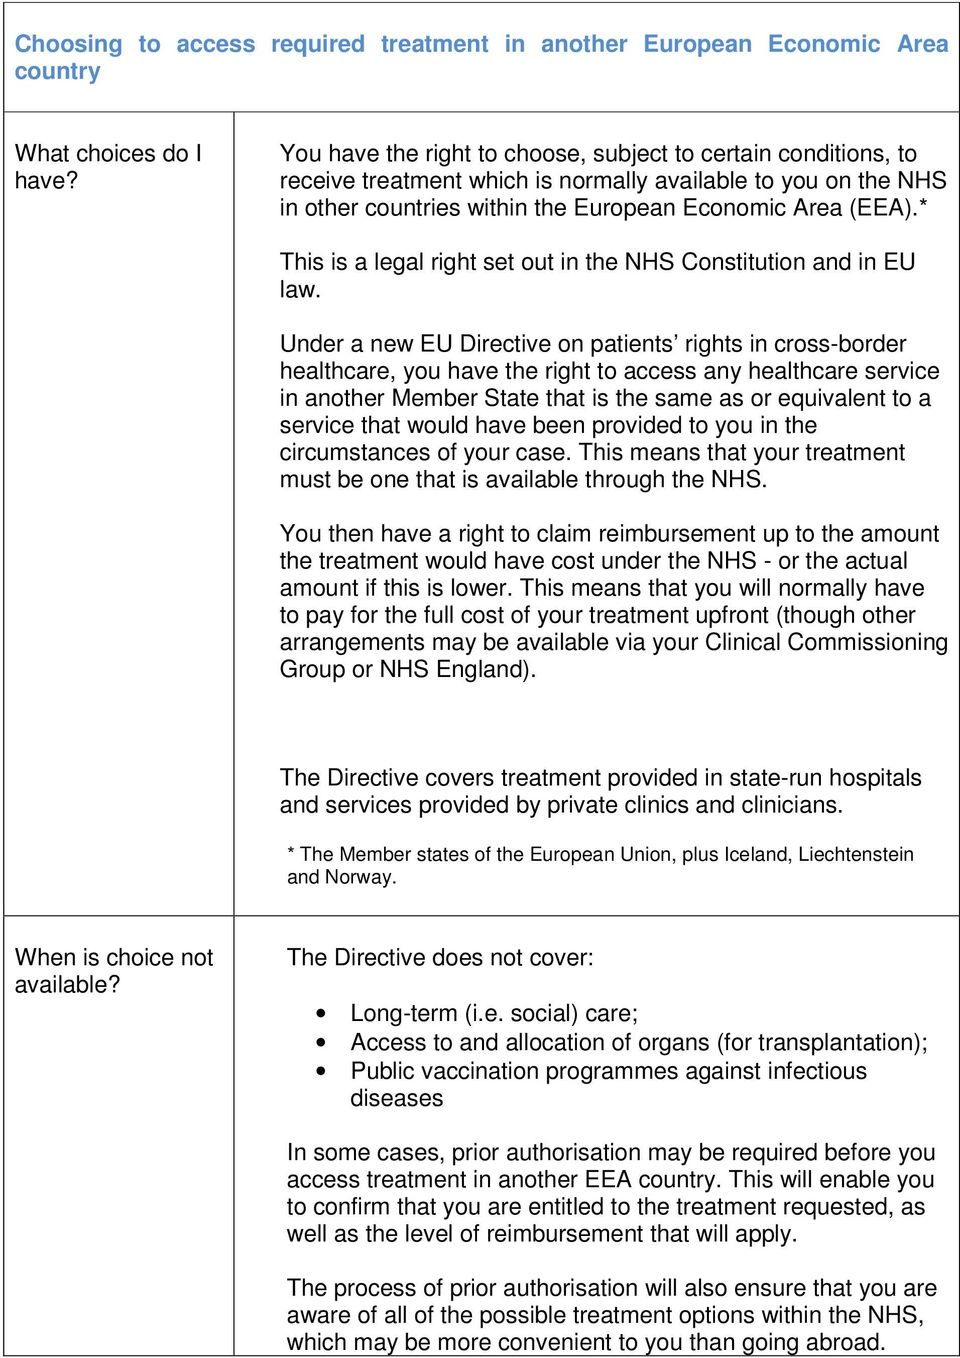 * This is a legal right set out in the NHS Constitution and in EU law.